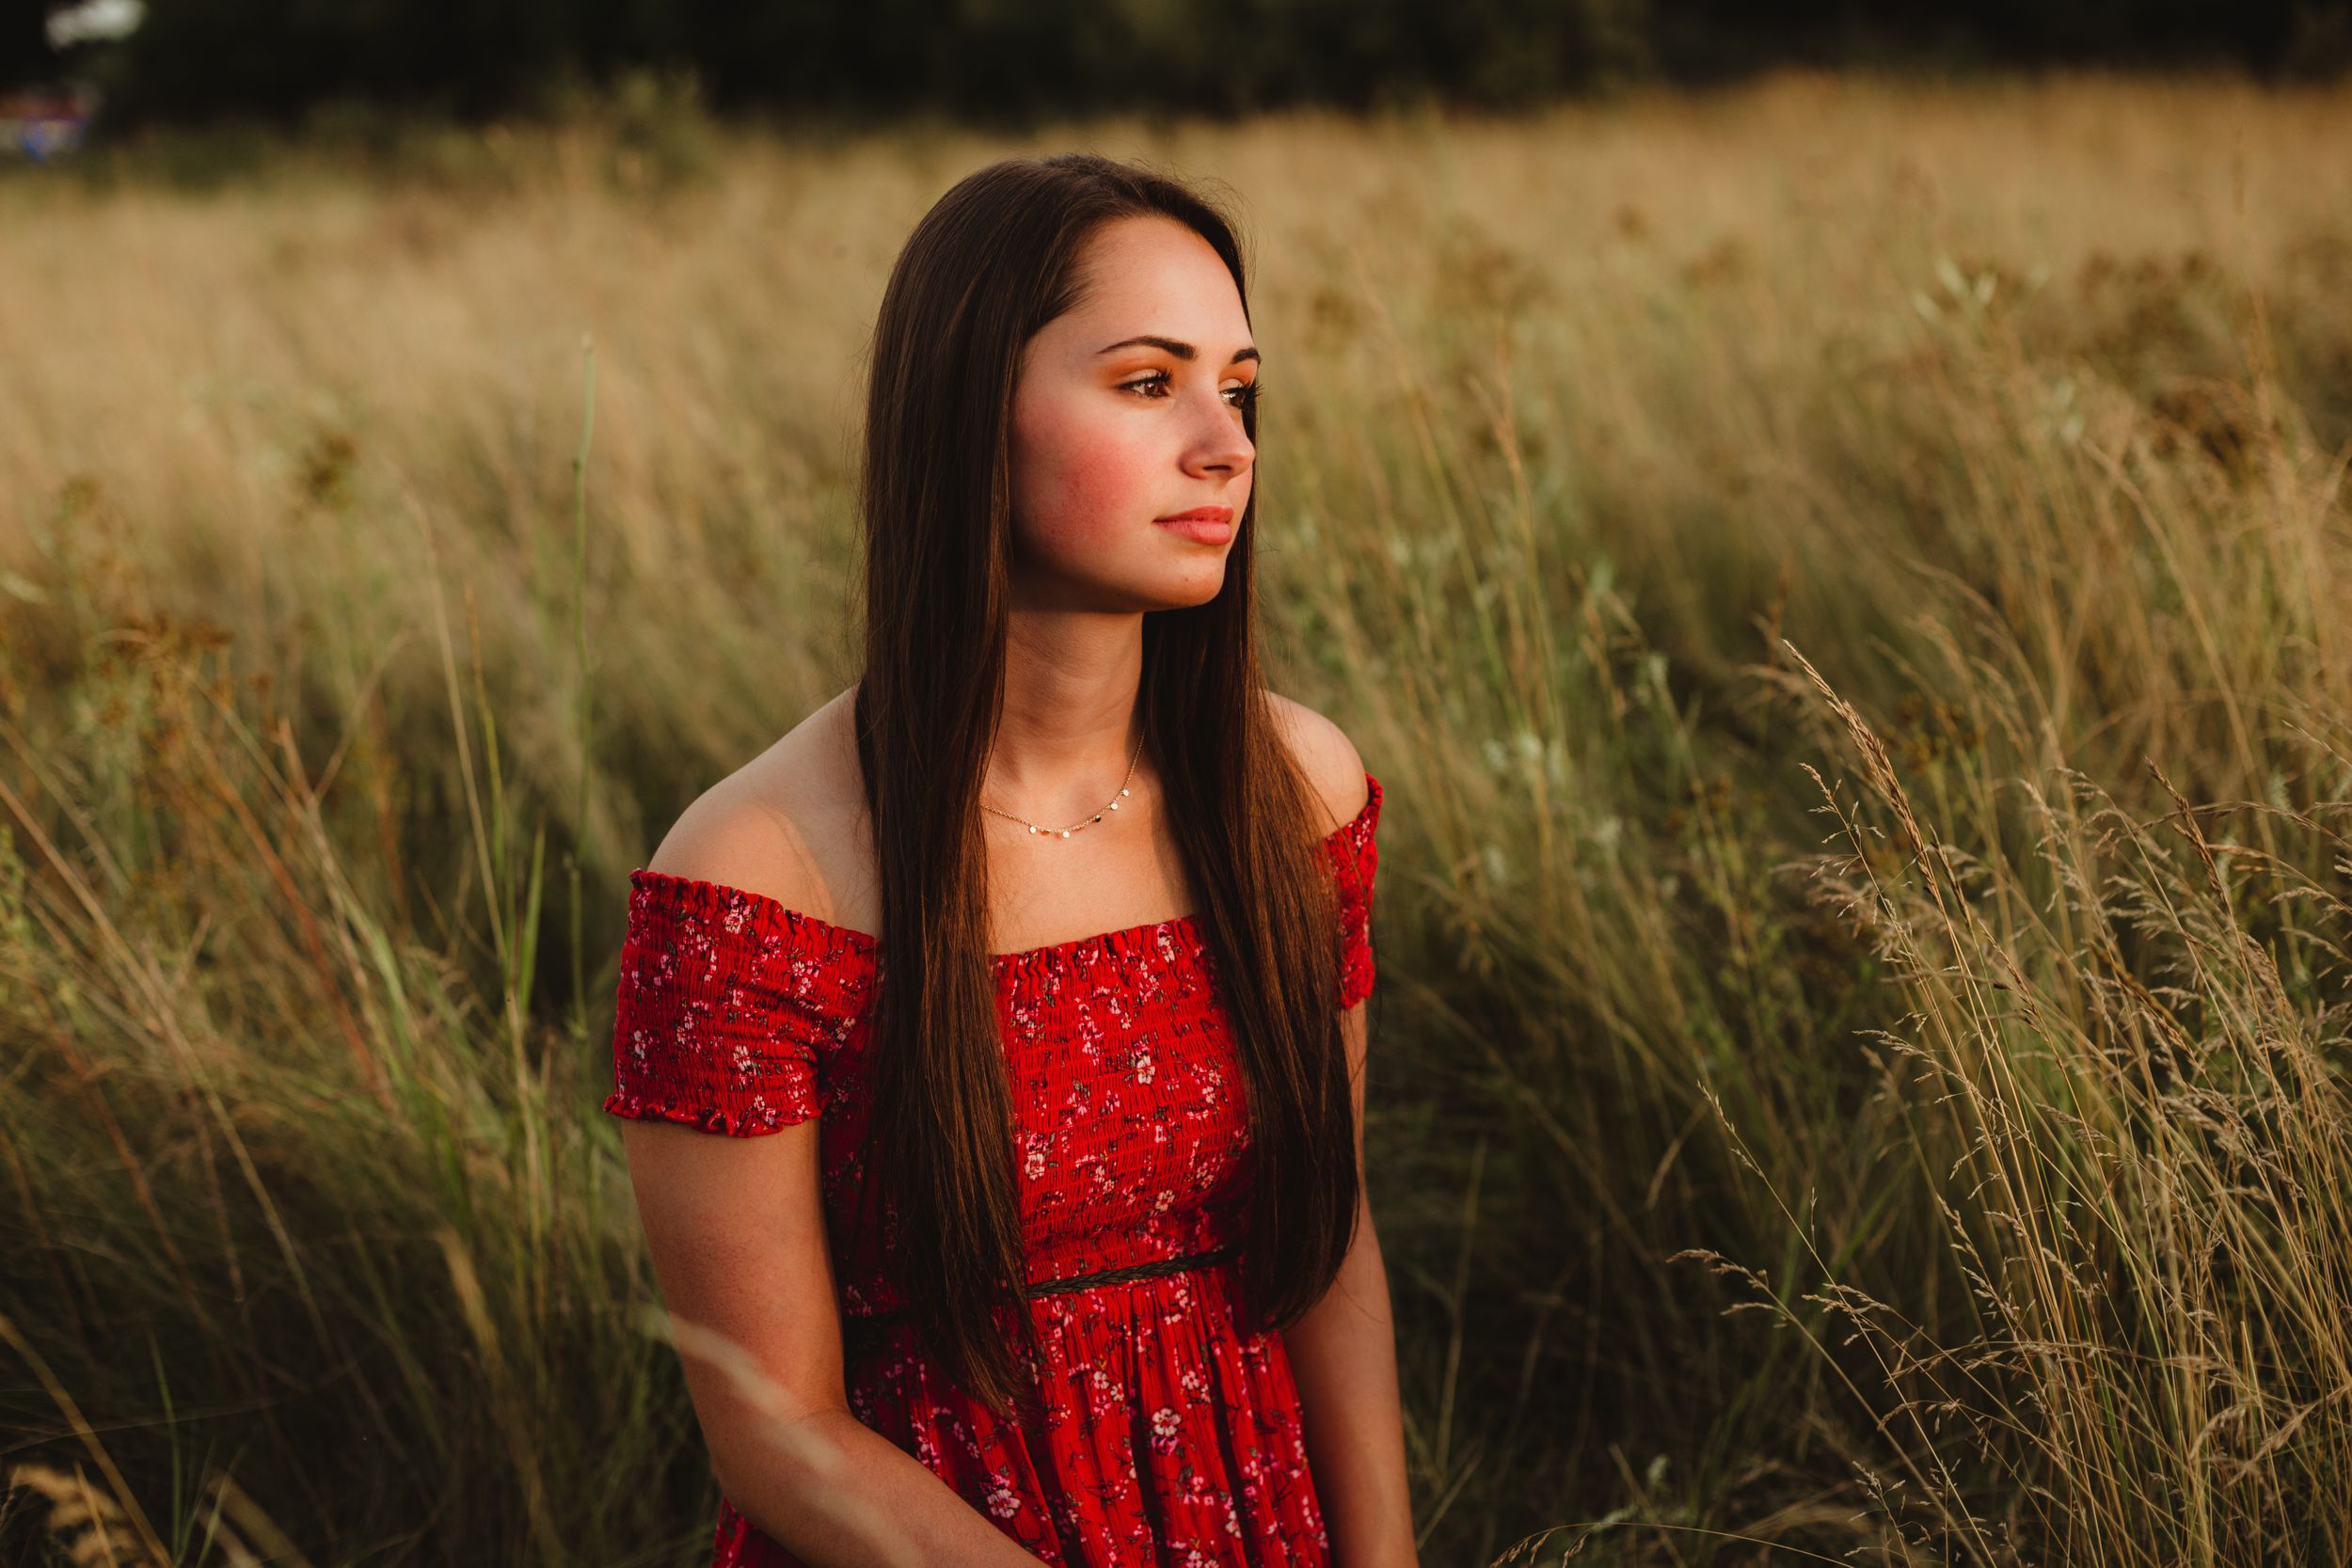 High school senior girl with long dark hair and a red dress sitting in an overgrown field facing the sunset.